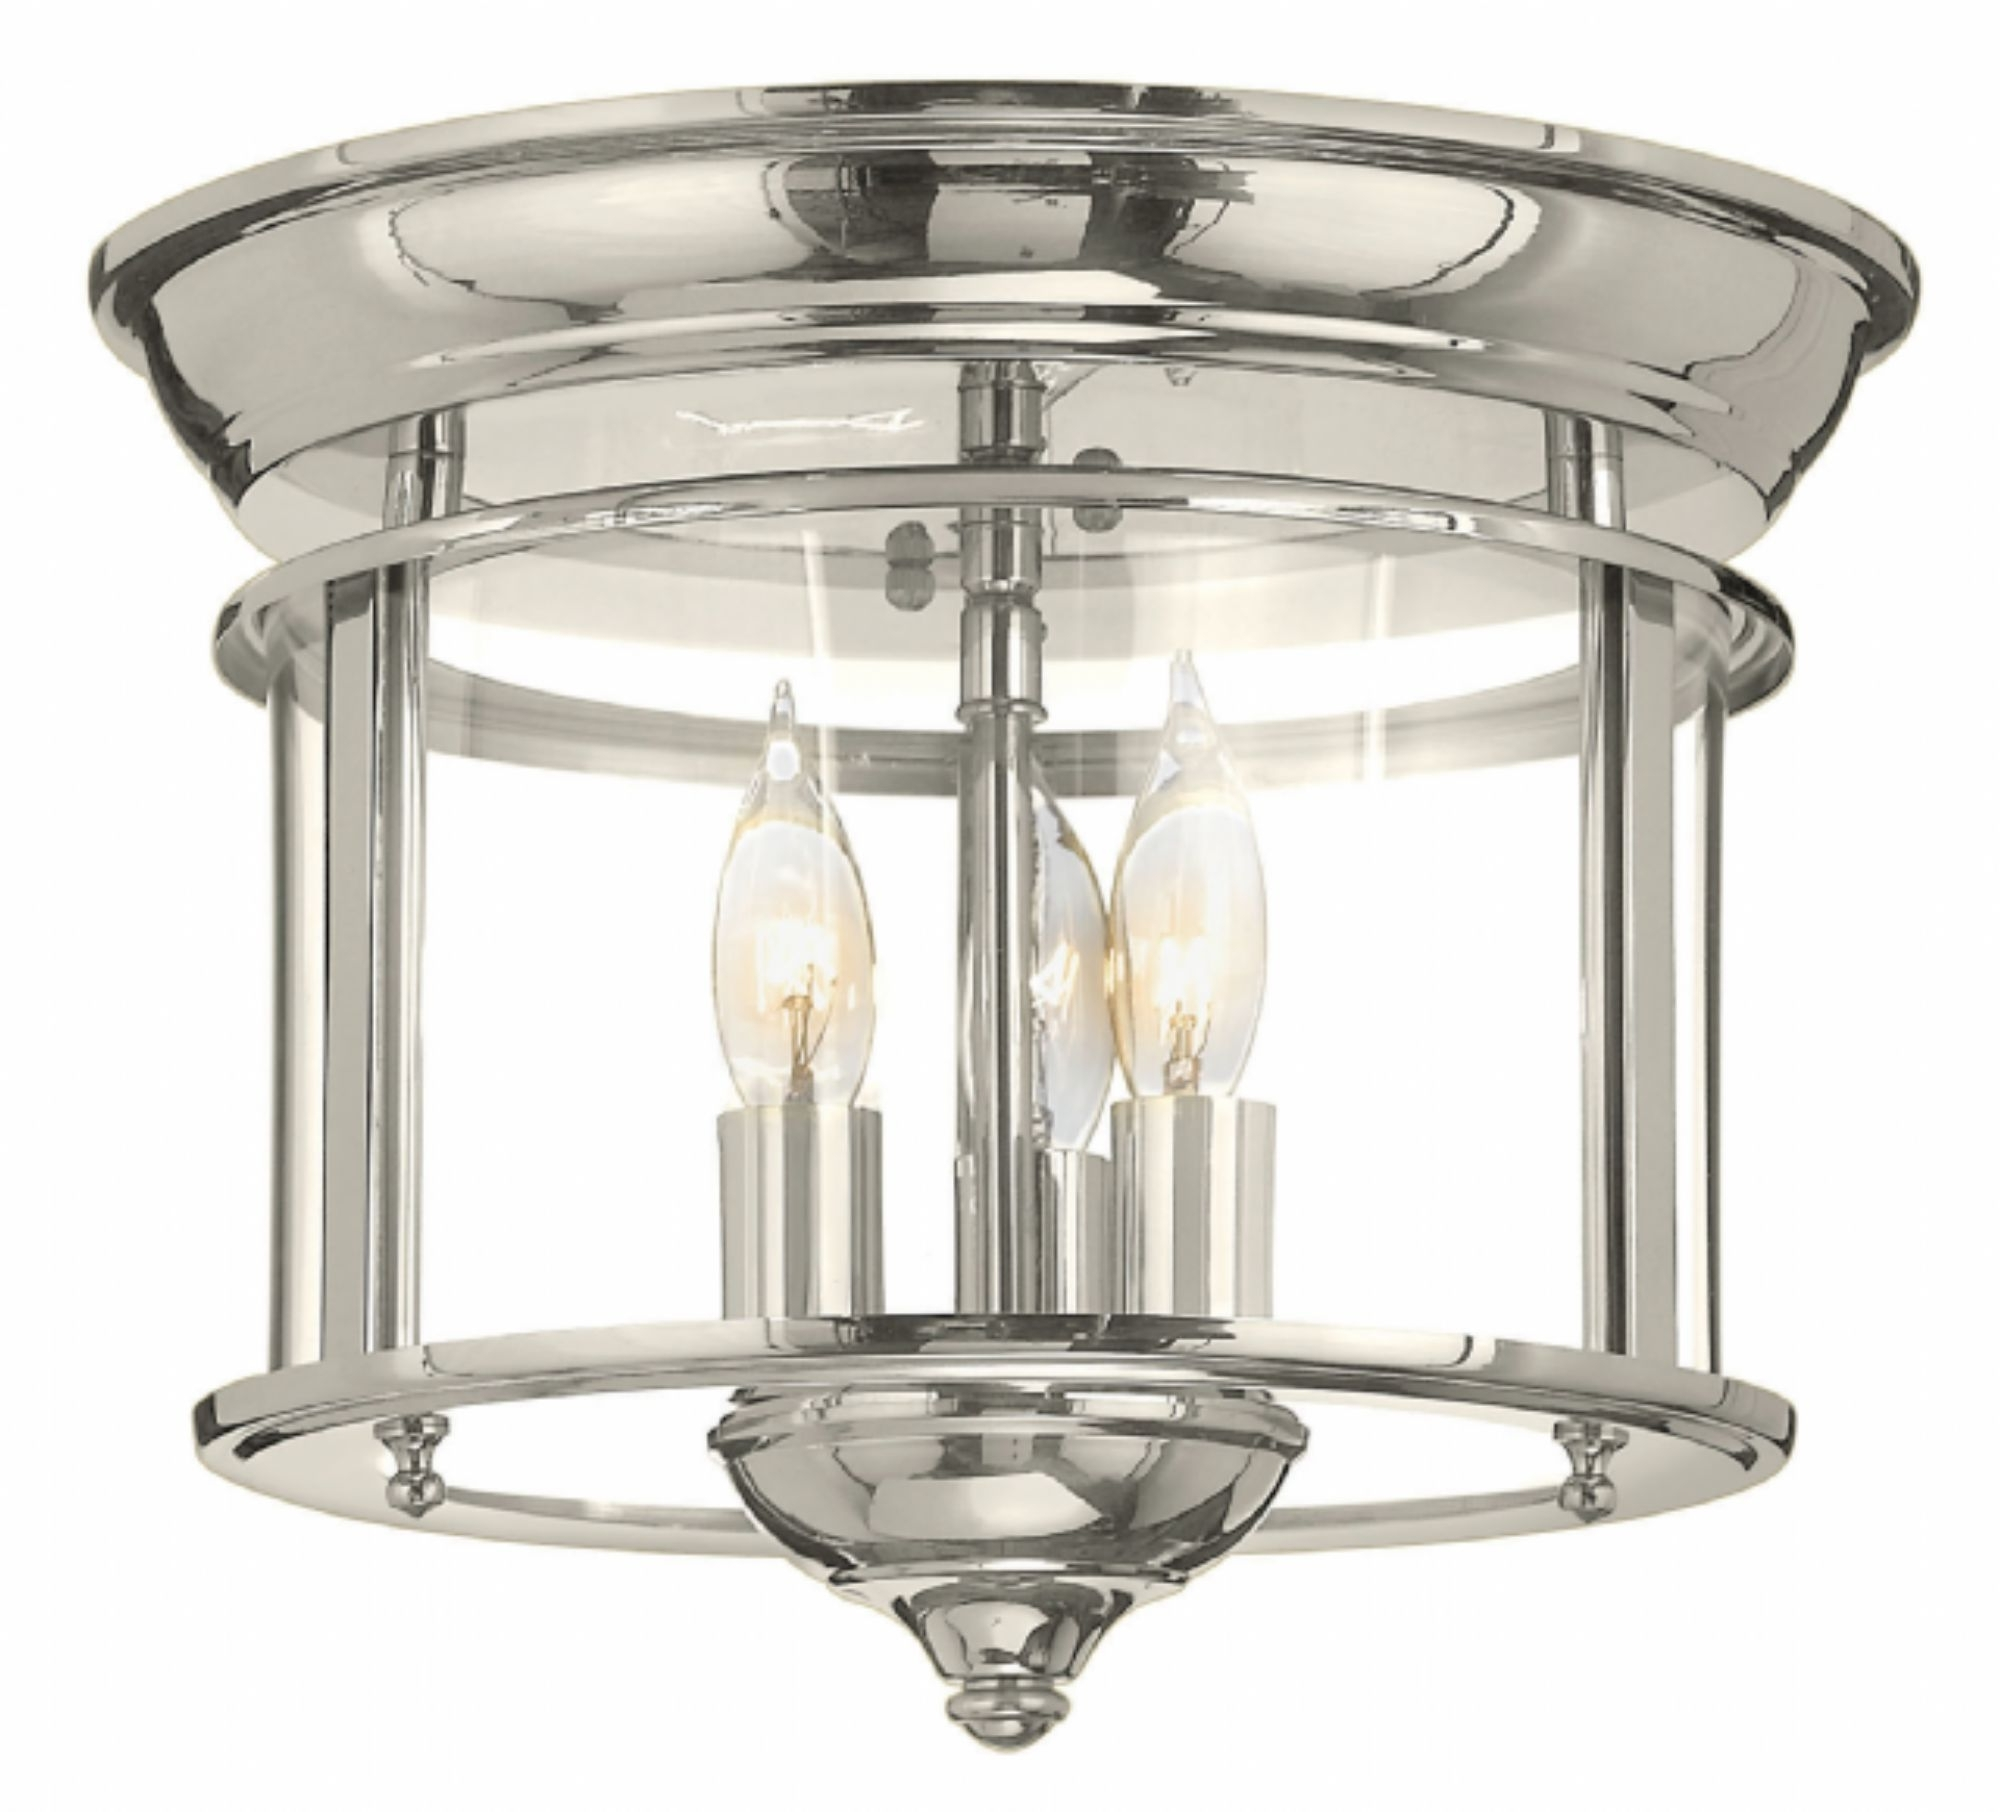 Flush Mount Hinkley Lighting With Best And Newest Polished Nickel Gentry > Interior Ceiling Mount (View 7 of 20)